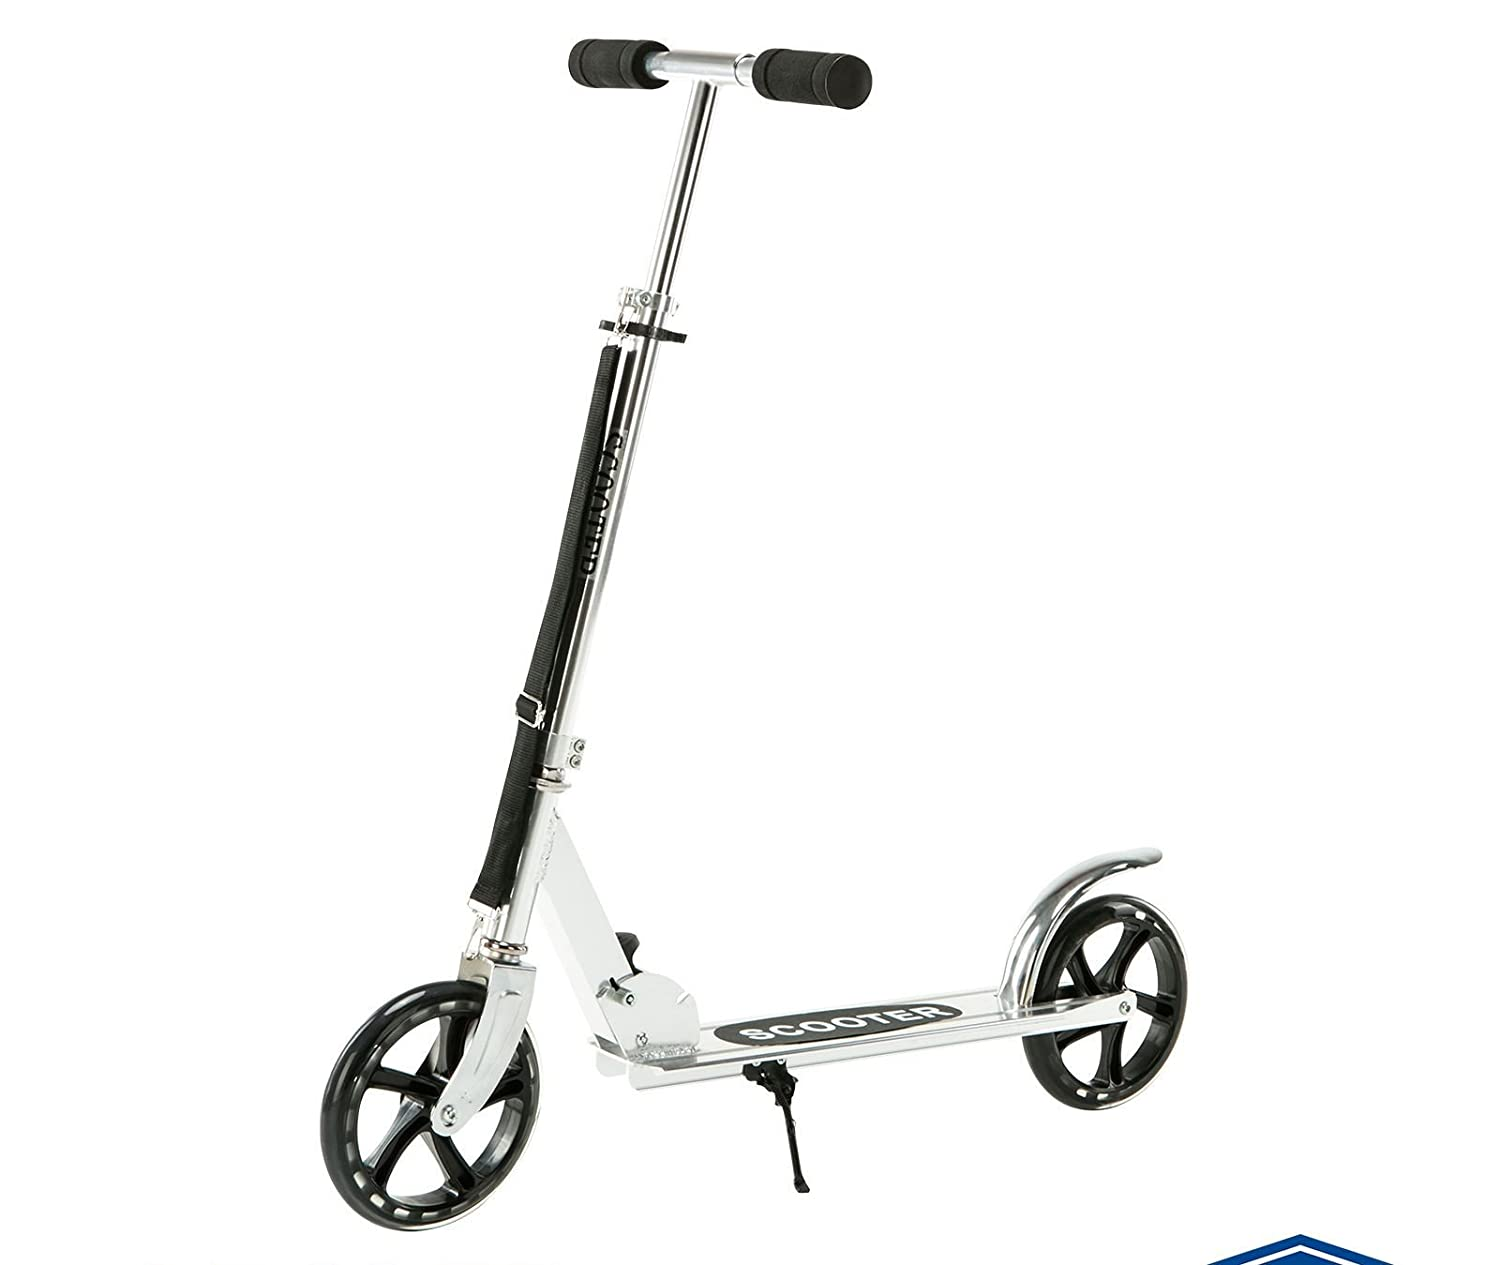 New Folding Kick Scooter 2 Wheels Outdoor Kid/Adult Ride Sport Exercise Scooter Silver